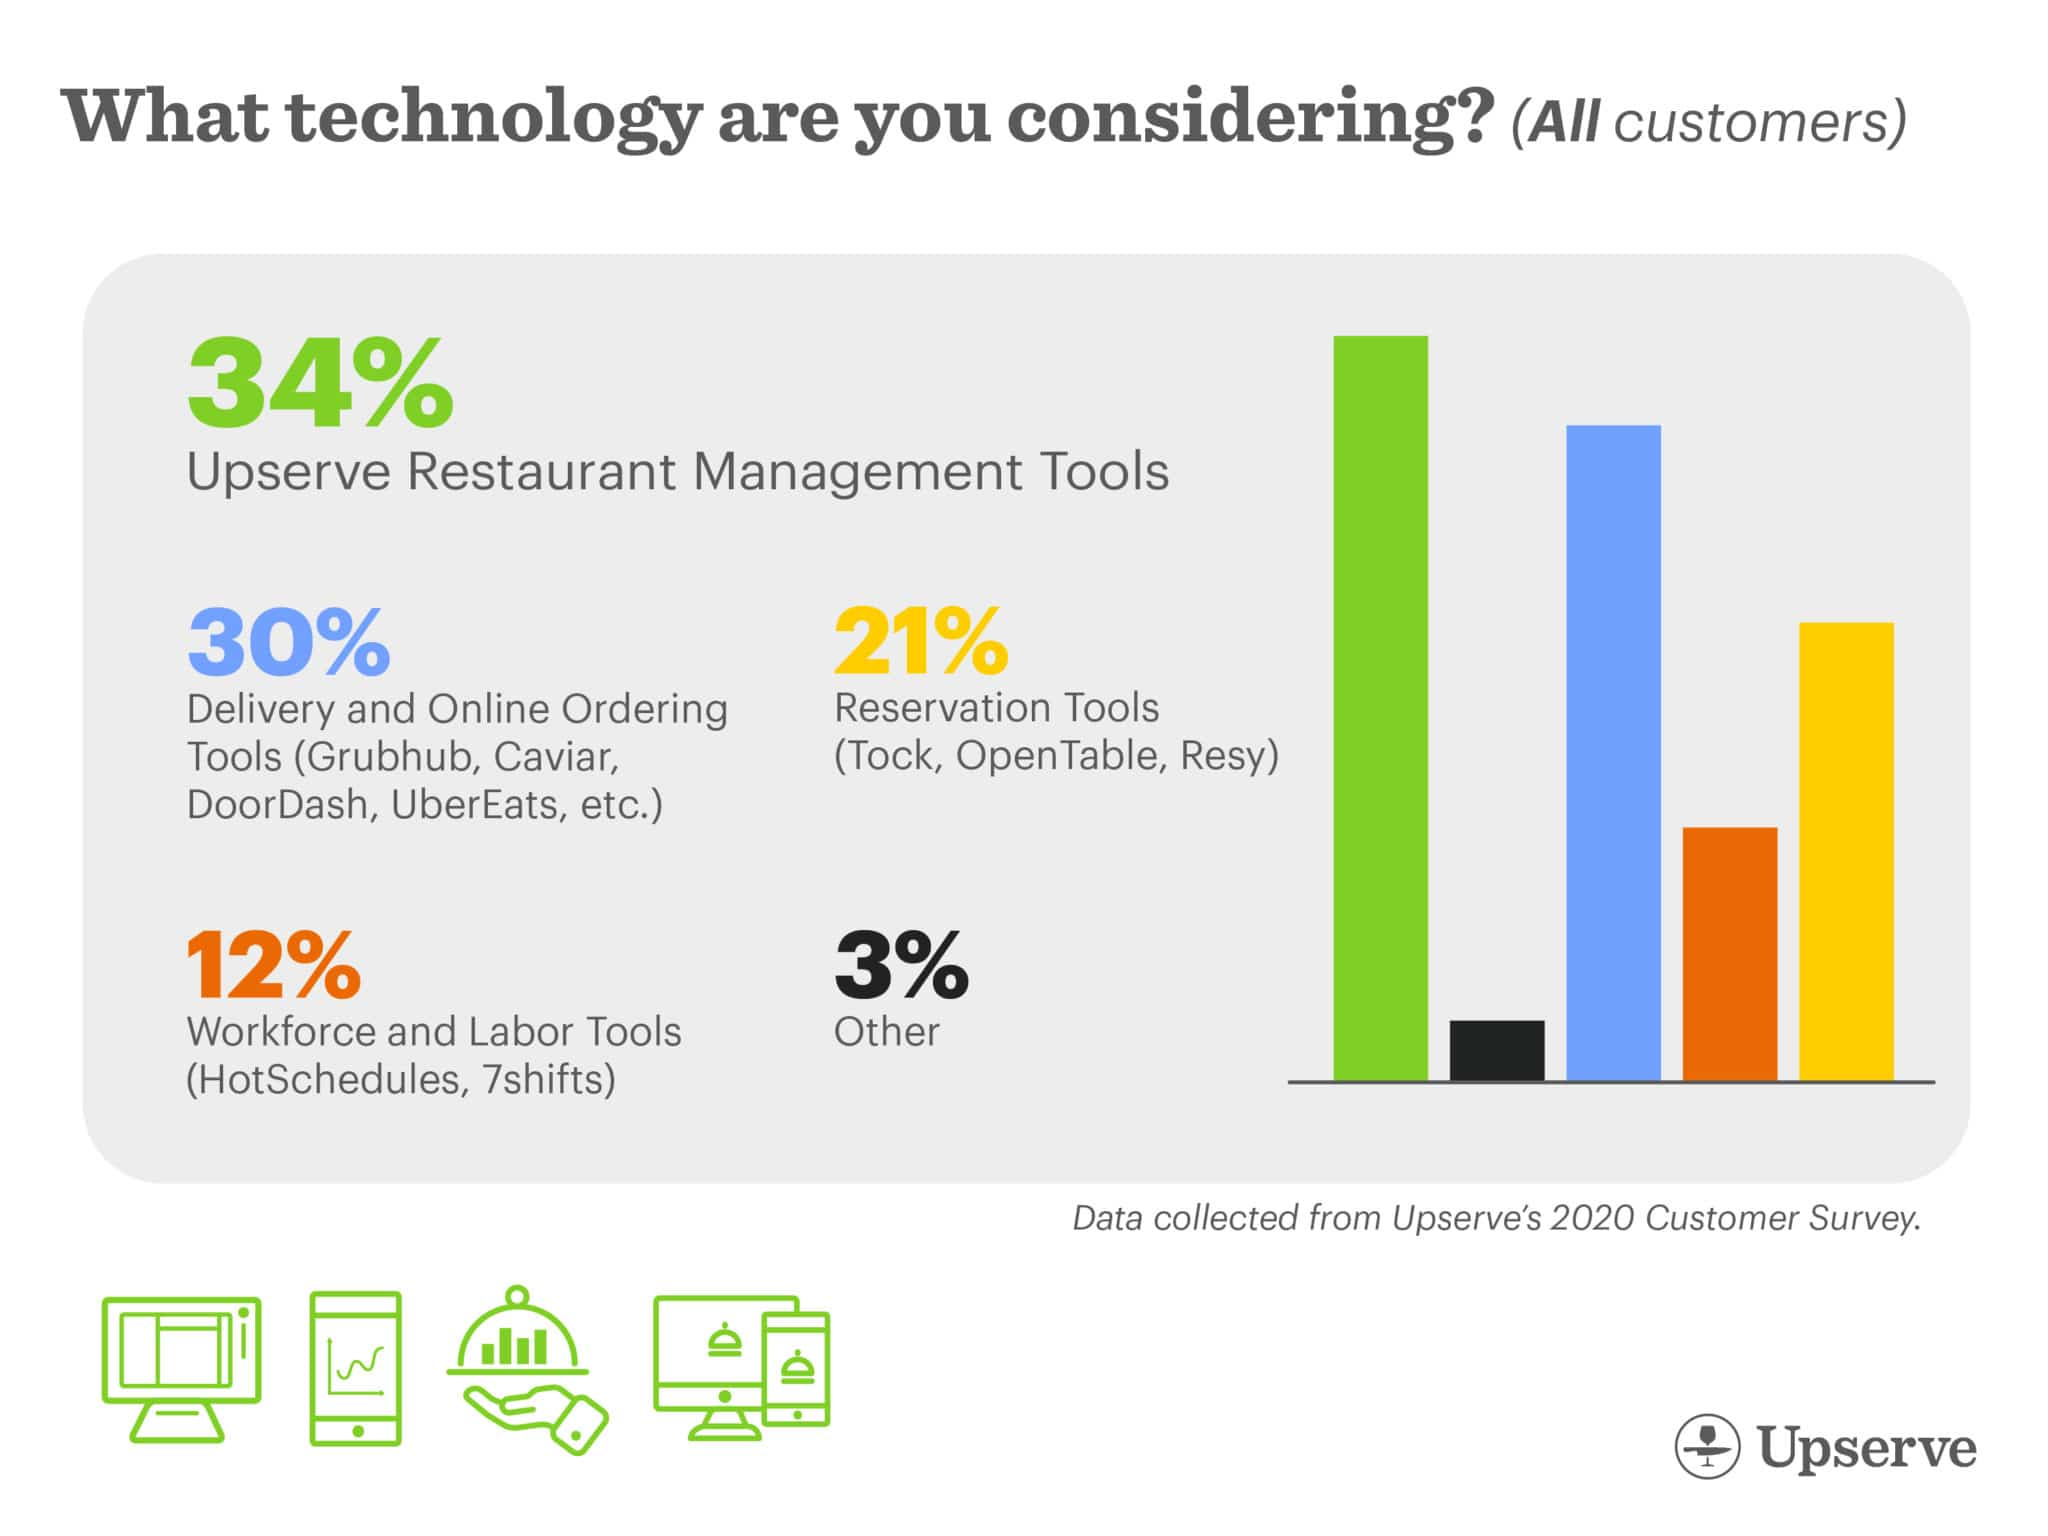 What technology is helping restaurants re-open?